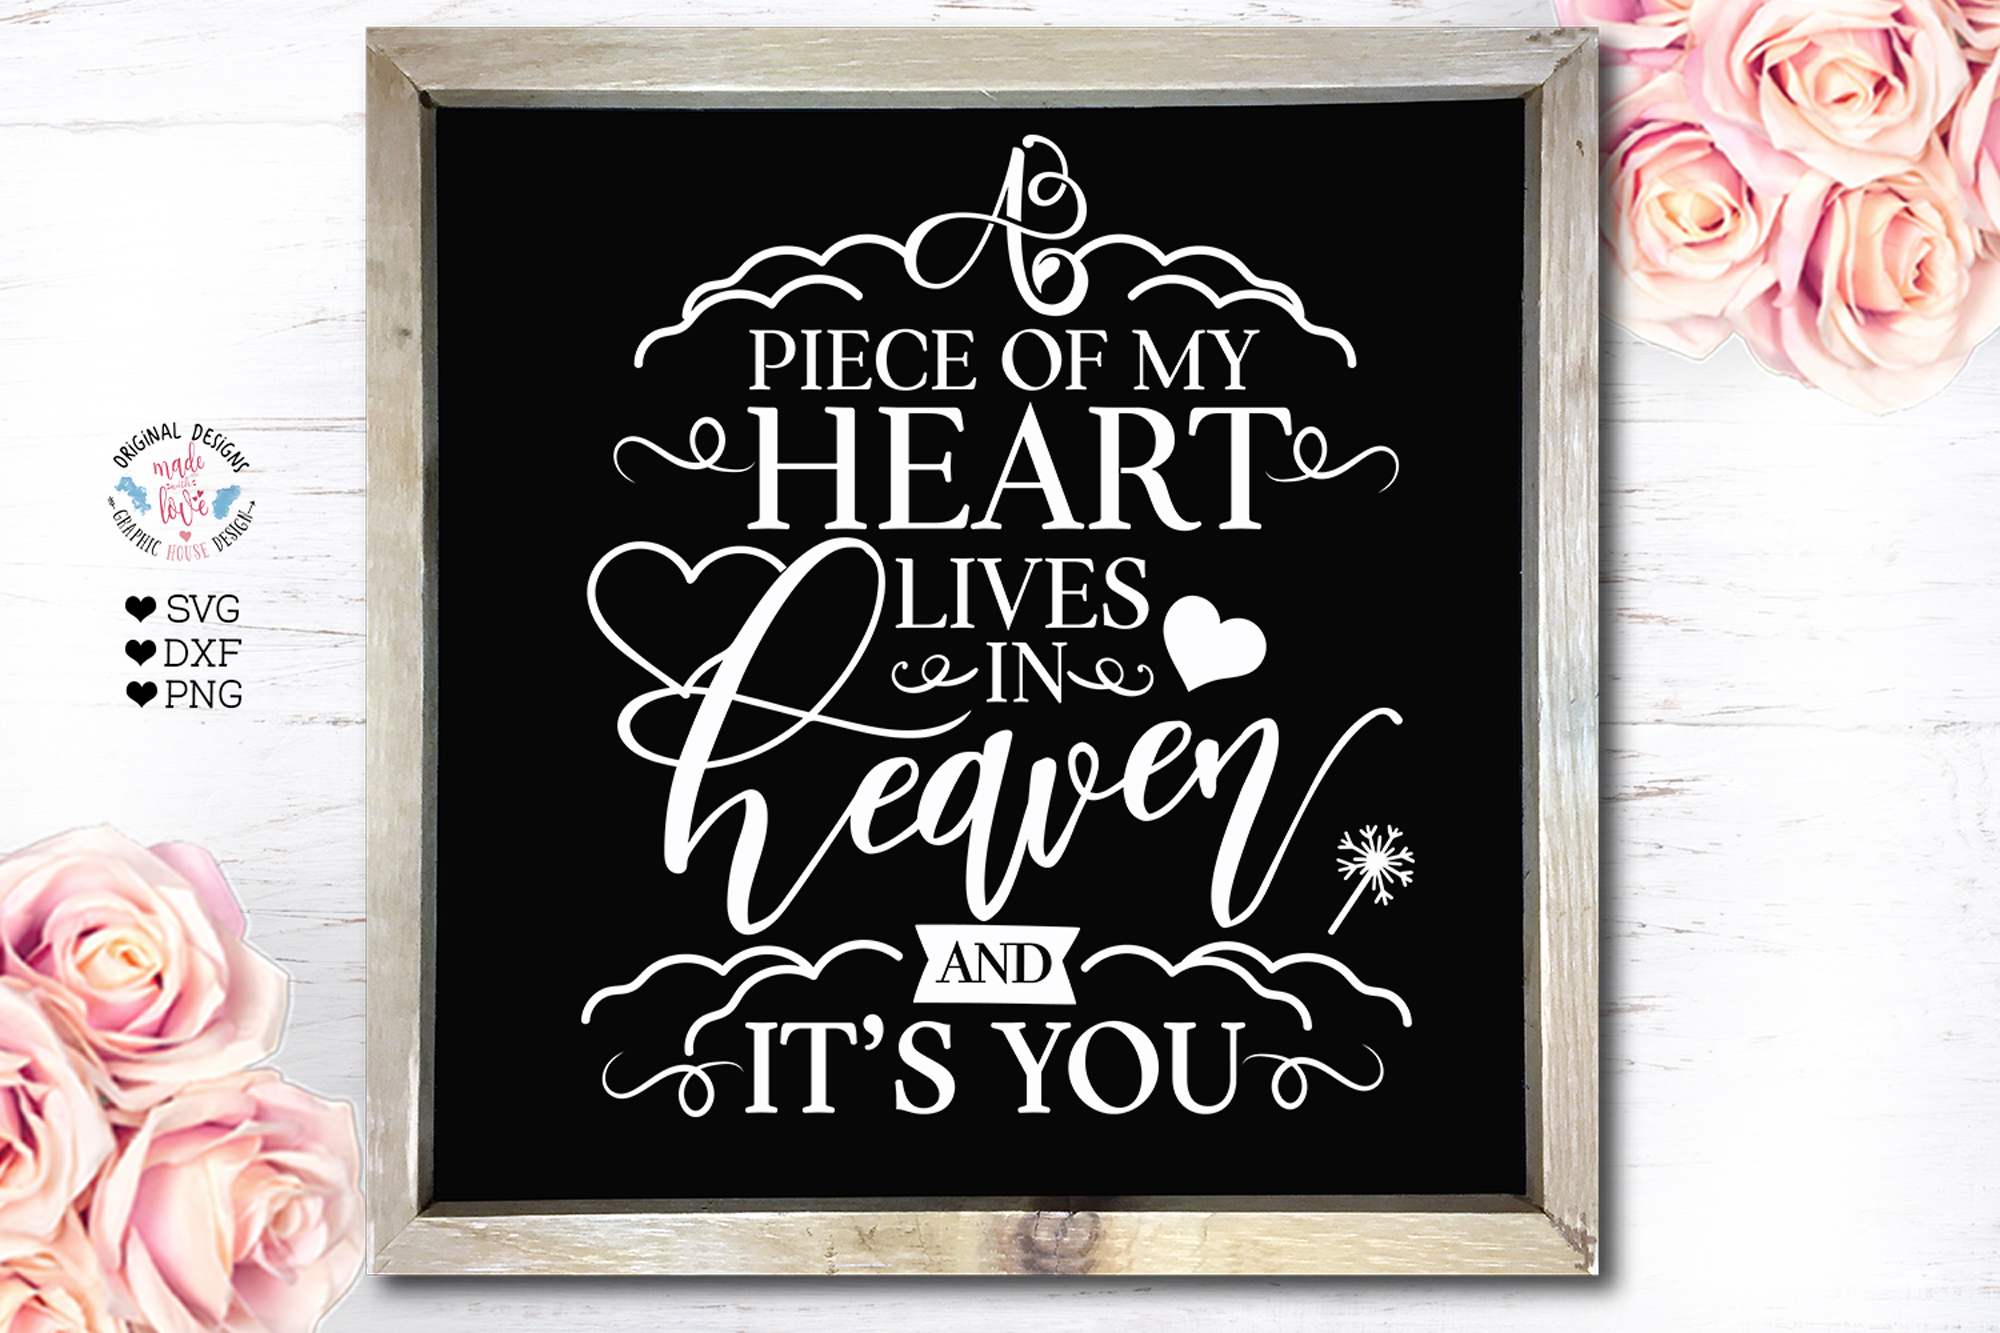 Piece of My Heart lives in Heaven Memorial Cut File example image 2